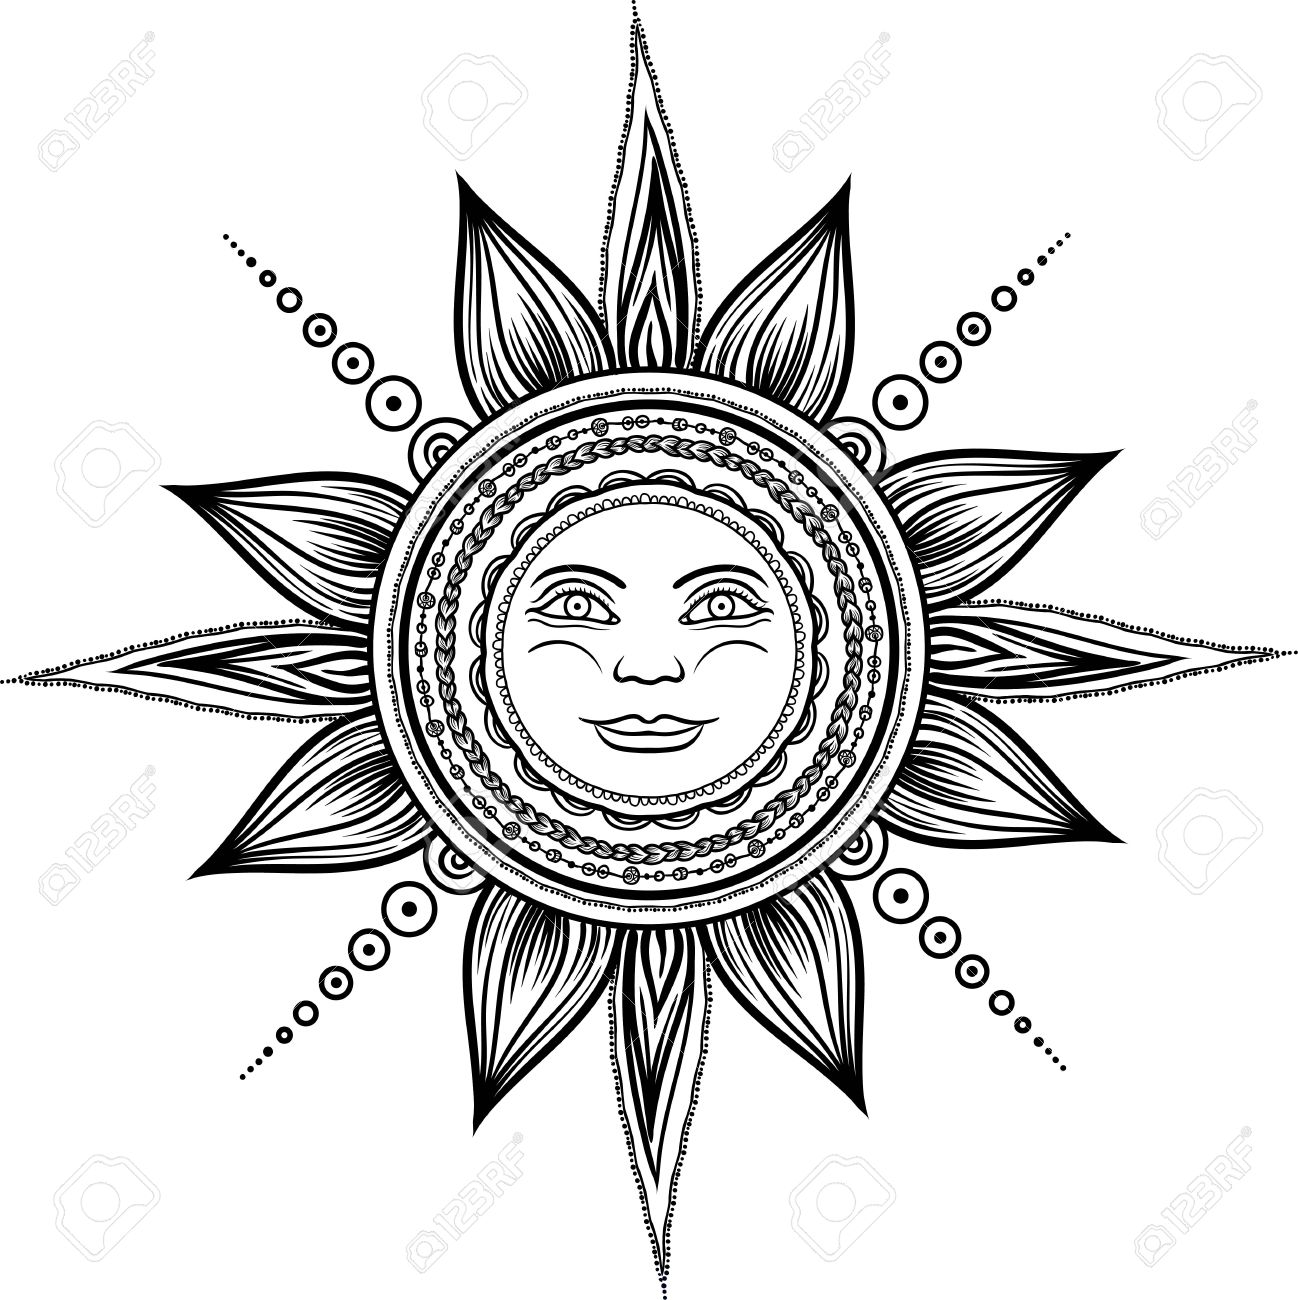 1298x1300 Vintage Hand Drawn Sun Eclipse. Mehendi Zentangle Boho Chic Line